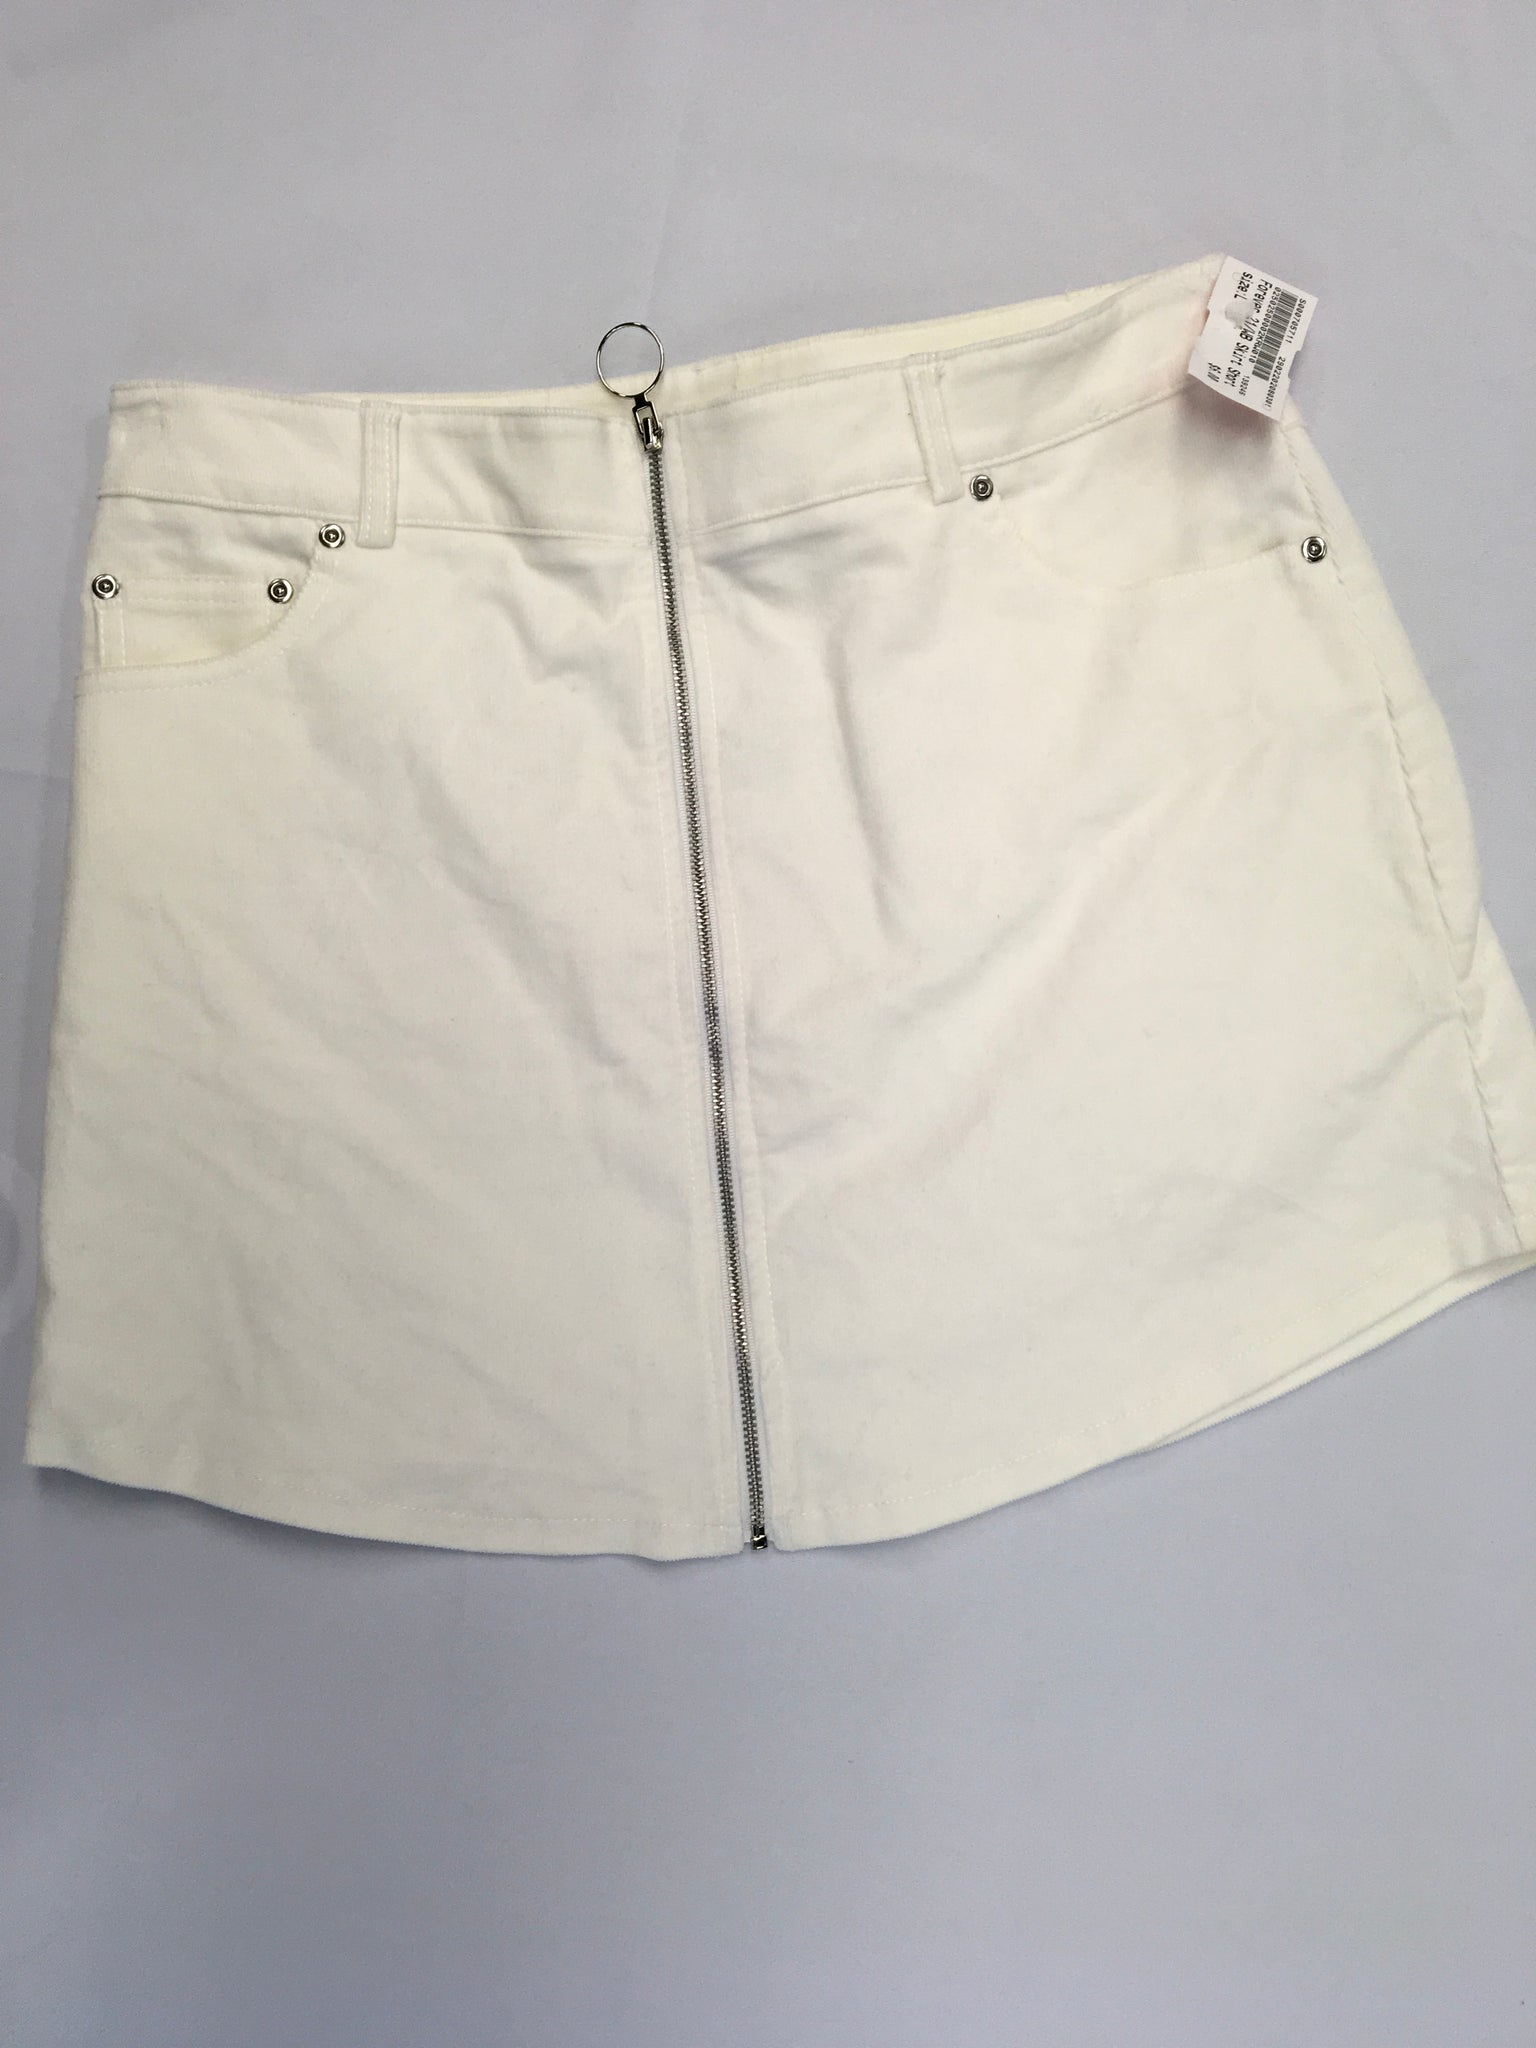 Forever 21 Womens Short Skirt Large - Plato's Closet